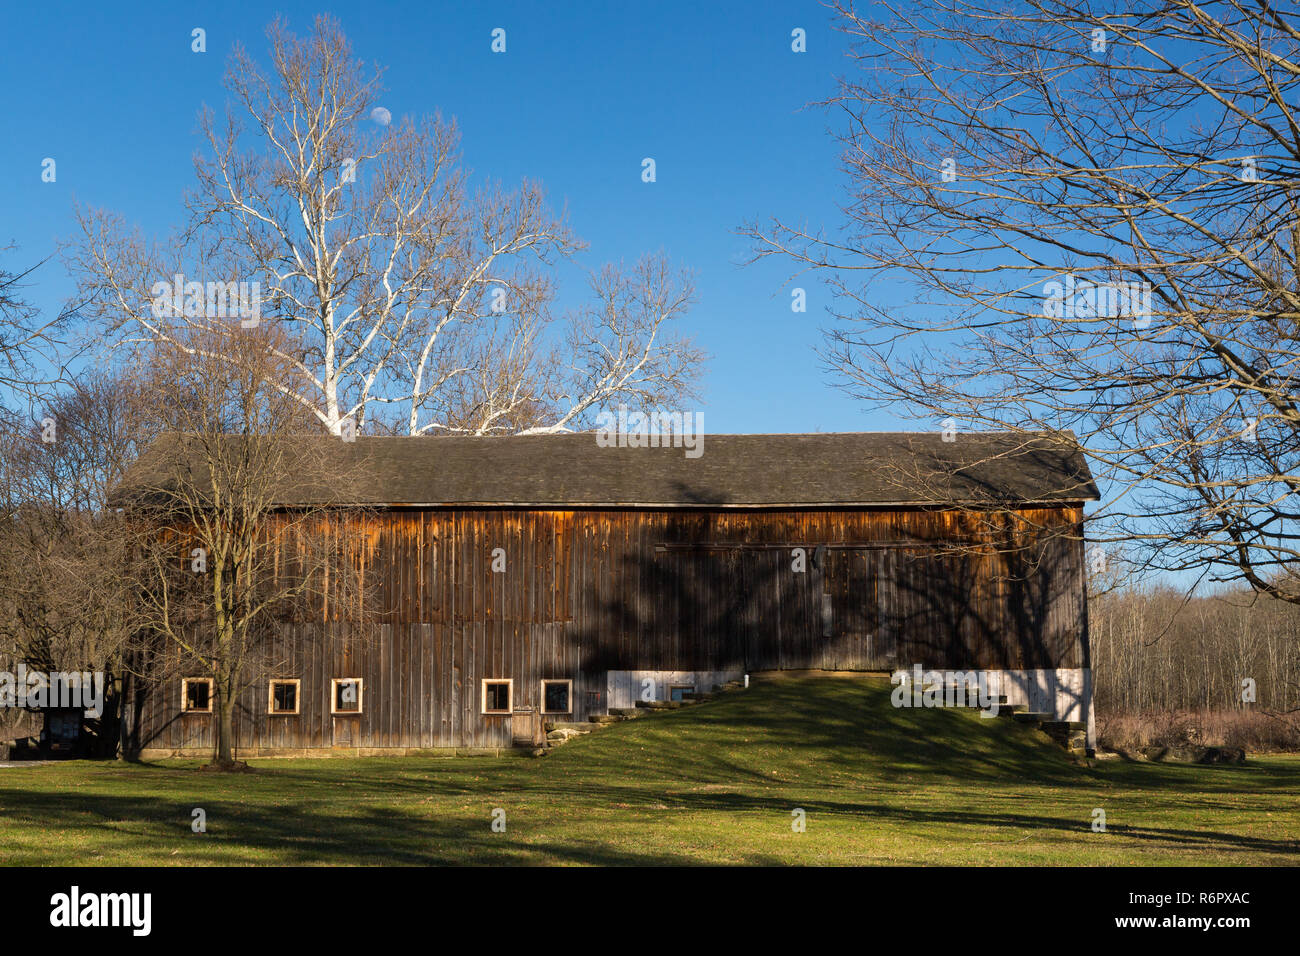 The moon rising above an old barn on the Stanford House property. Cuyahoga Valley National Park, Ohio - Stock Image